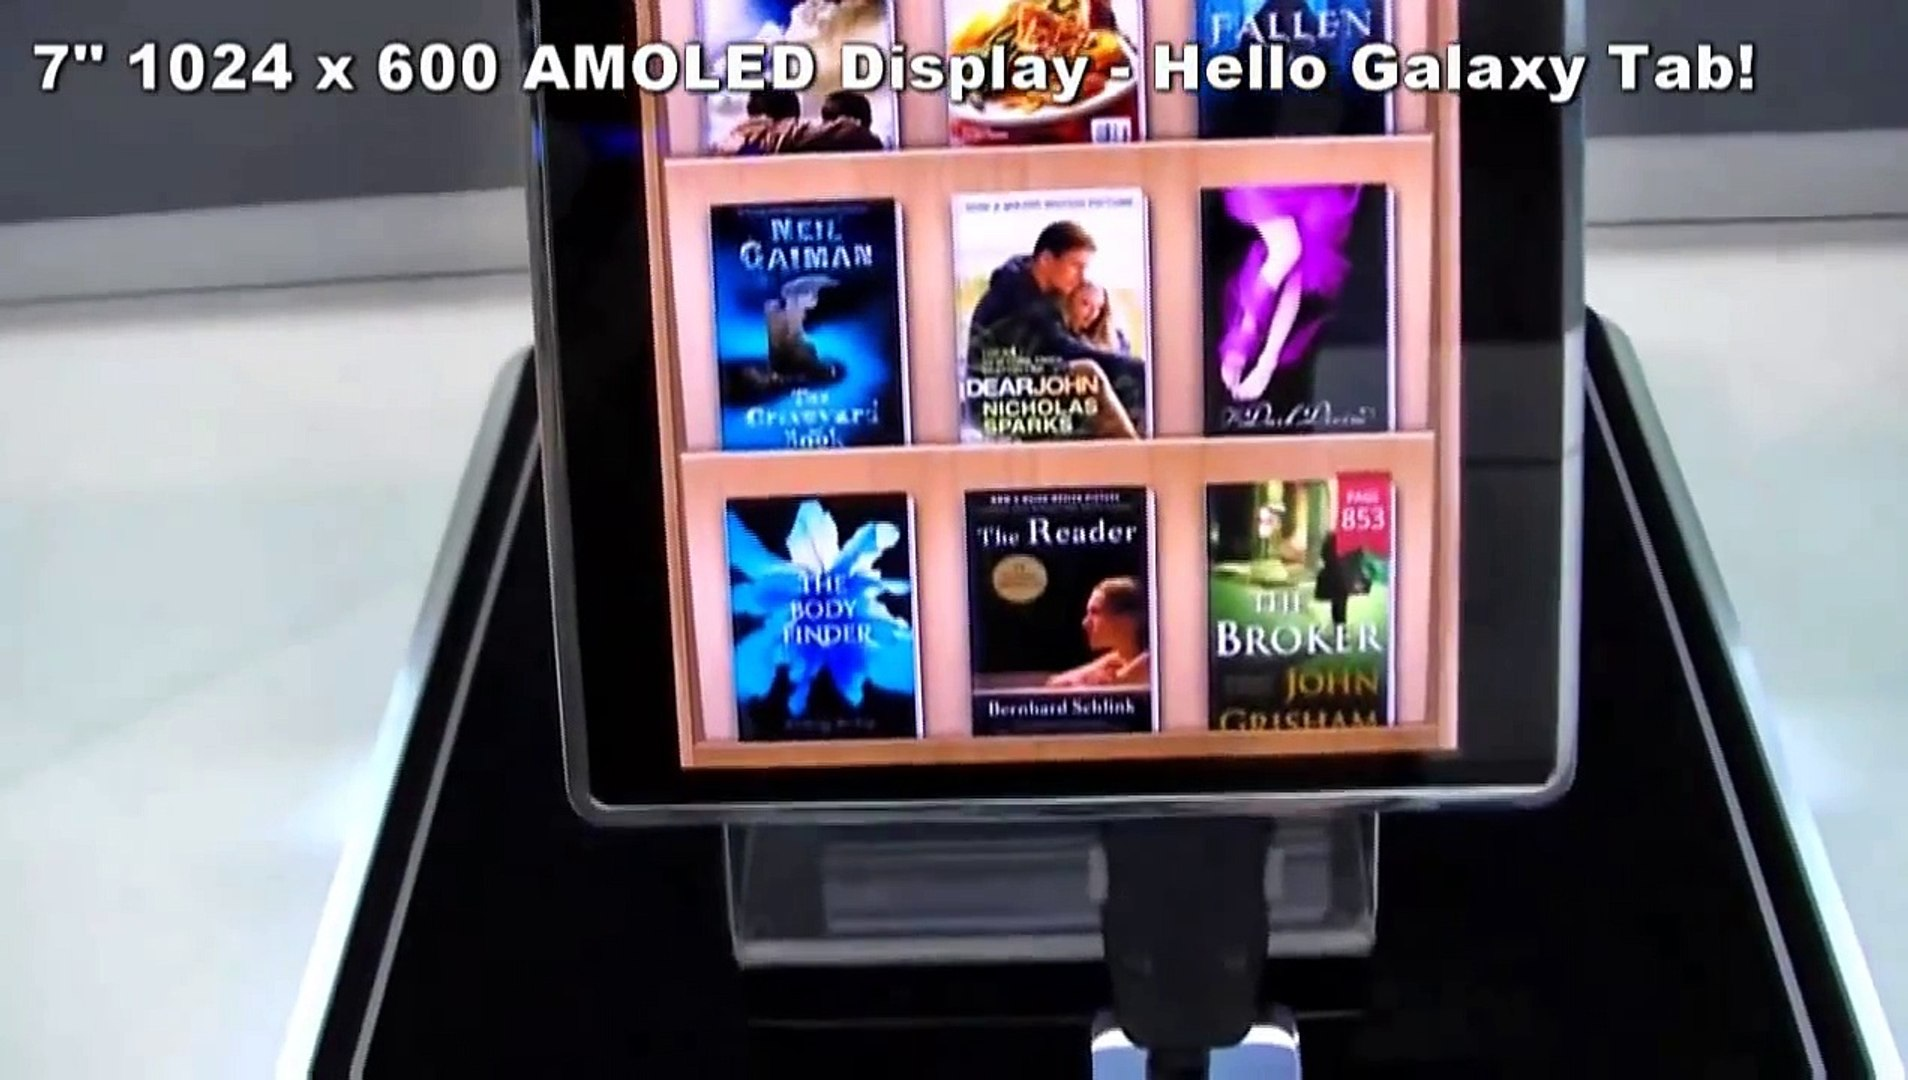 Samsung latest technology on Mobile, laptop and screen display.